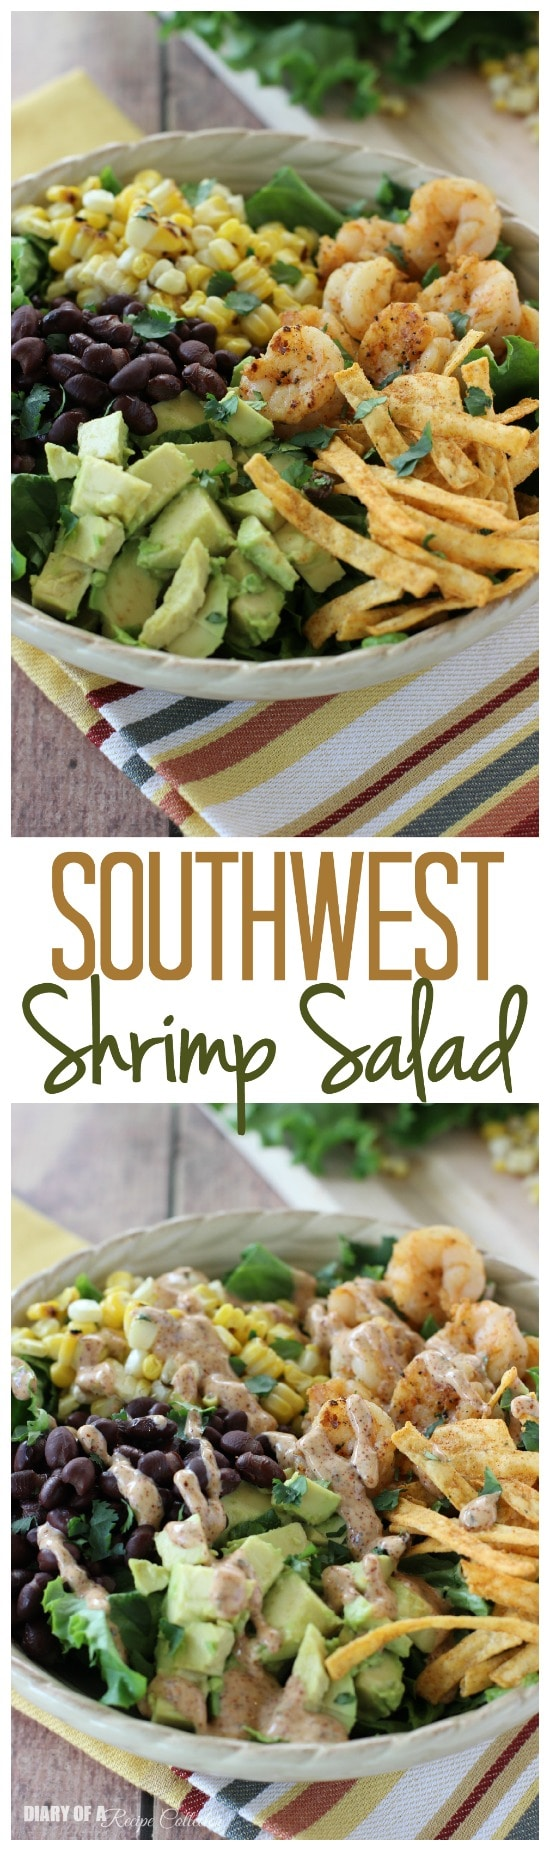 Southwest Shrimp Salad - Grilled shrimp and corn, black beans, diced avocado, and crispy southwest tortilla strips piled onto a bed of green leaf lettuce and topped with a mexi-ranch dressing.